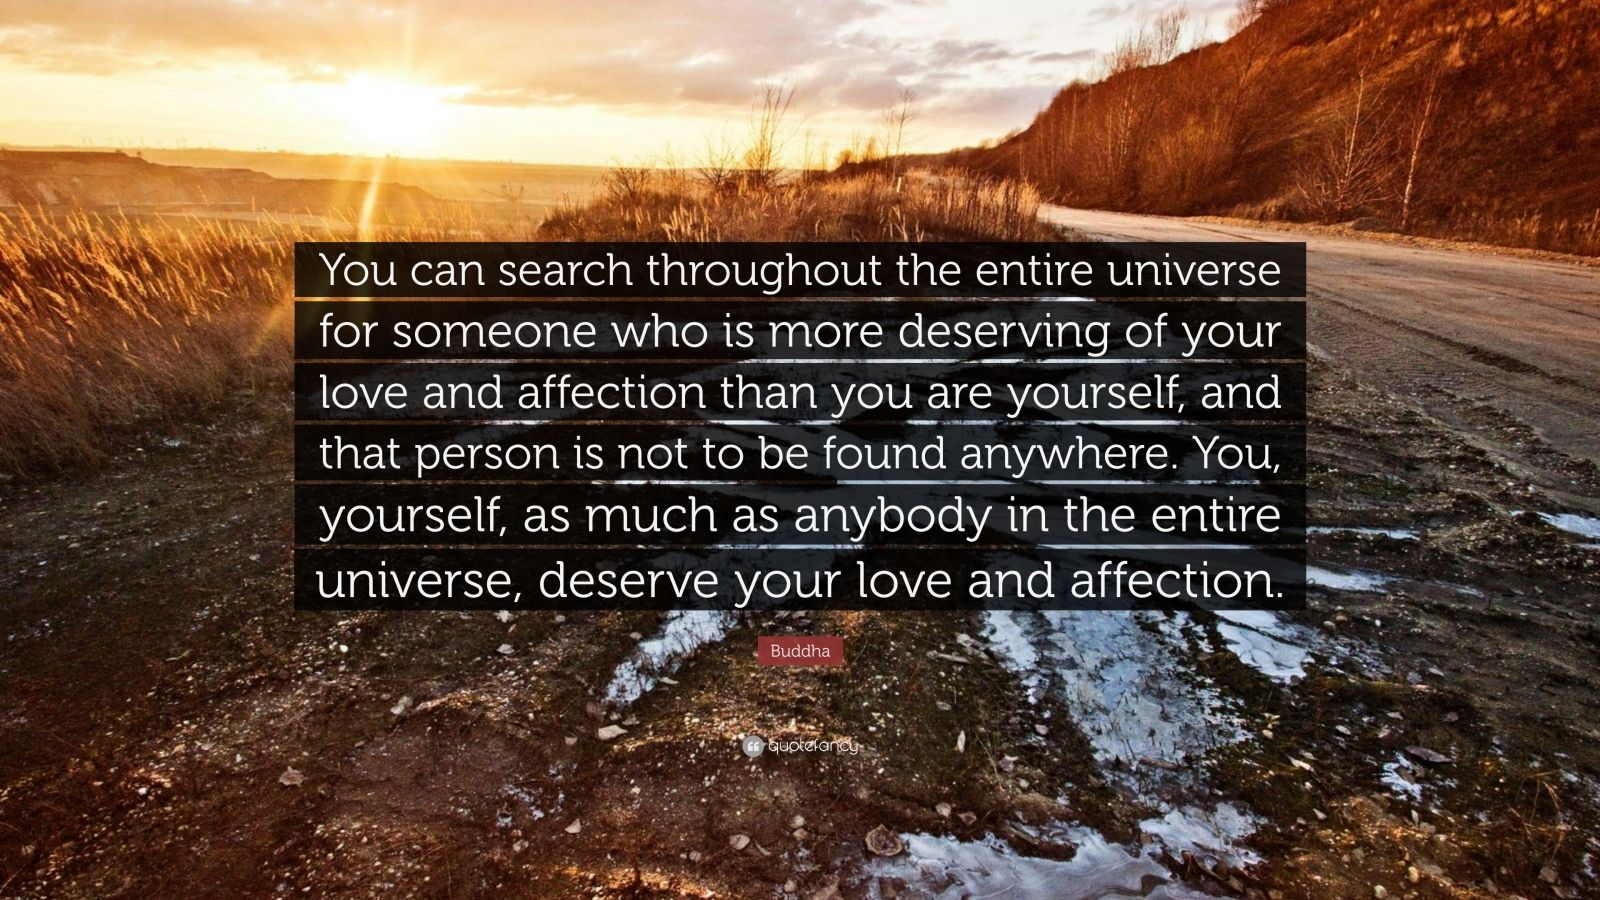 "Buddha Quote: ""You can search throughout the entire universe for someone who is more deserving of your love and affection than you are yourself, and that person is not to be found anywhere. You, yourself, as much as anybody in the entire universe, deserve your love and affection."""